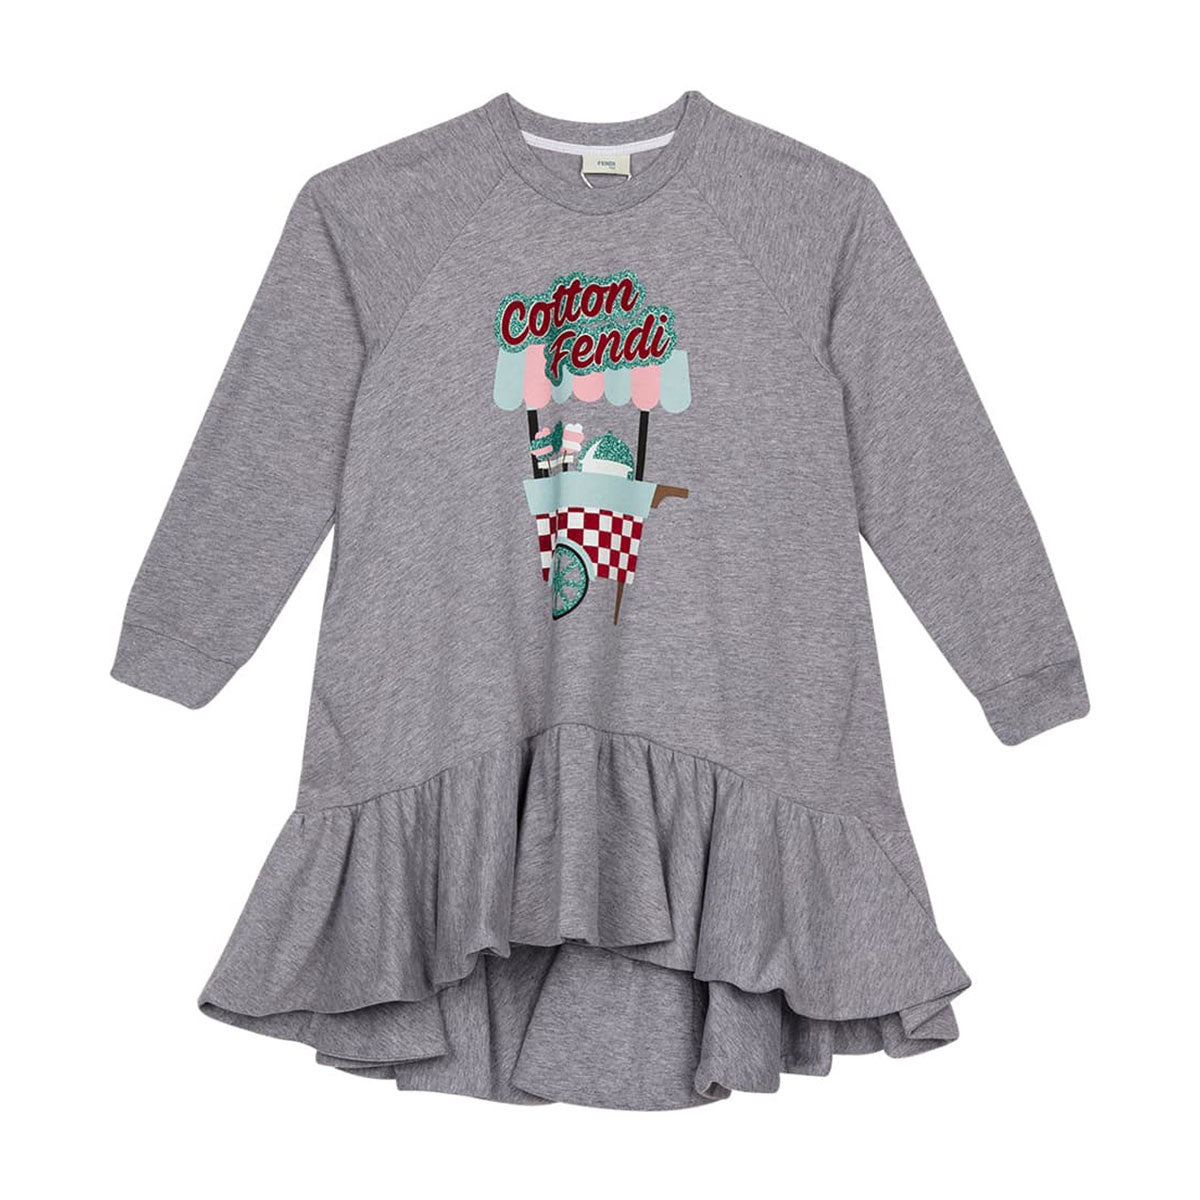 Fendi - Sweat Dress For Girls, Grey